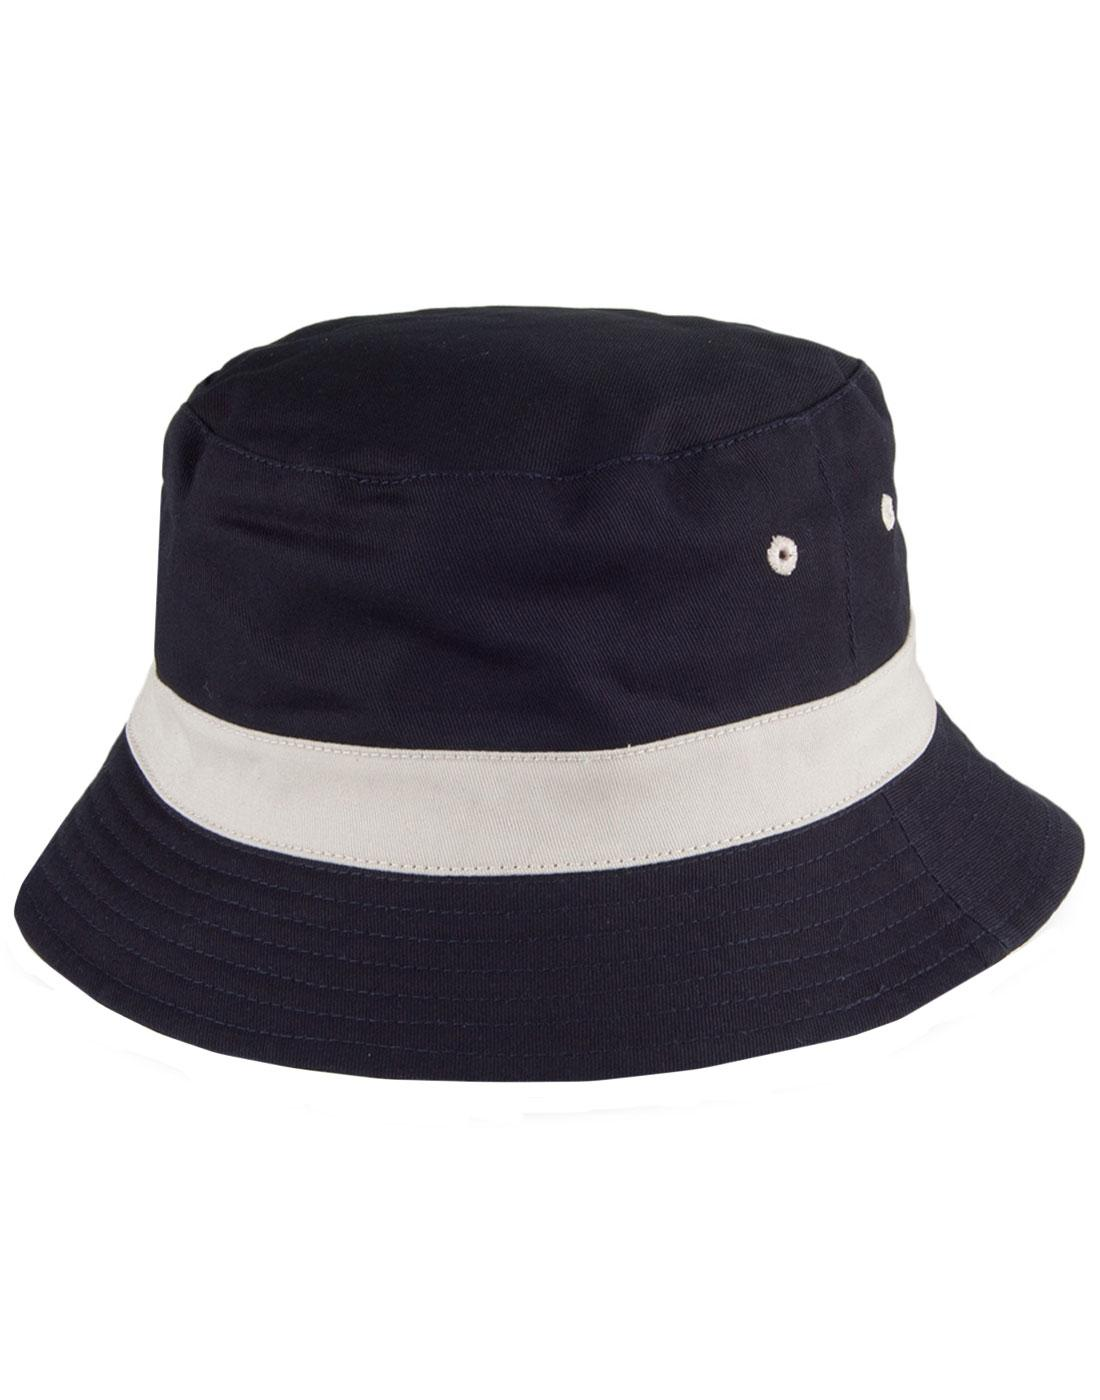 FAILSWORTH Retro 1990s Reversible Bucket Hat